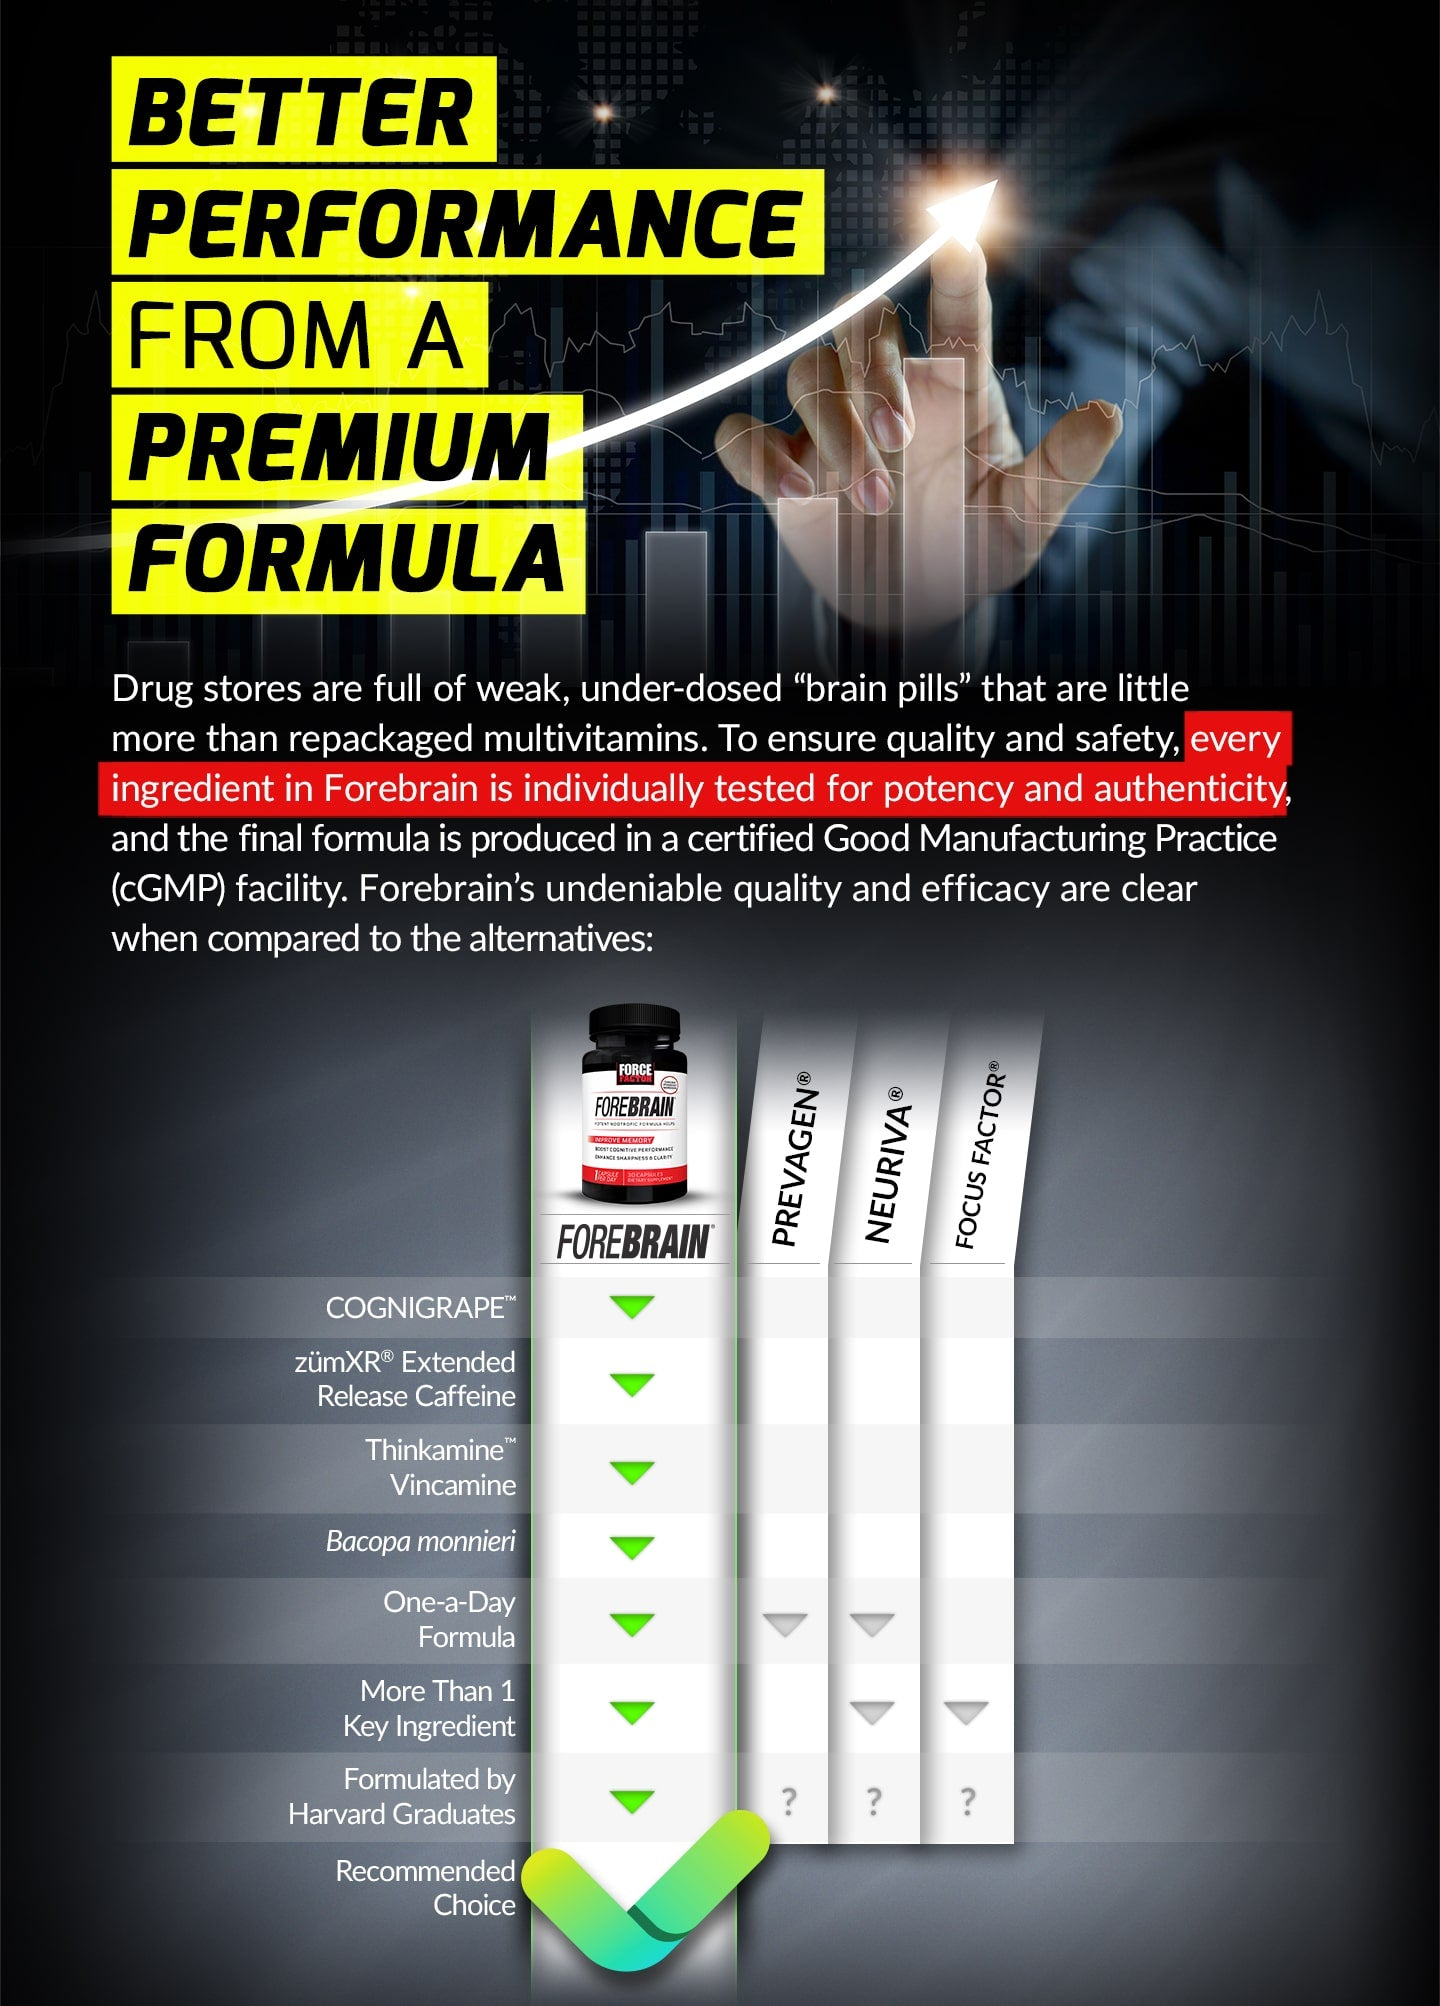 "BETTER PERFORMANCE FROM A PREMIUM FORMULA. Drug stores are full of weak, under-dosed ""brain pills"" that are little more than repackaged multivitamins. To ensure quality and safety, every ingredient in Forebrain is individually tested for potency and authenticity, and the final formula is produced in a certified Good Manufacturing Practice (cGMP) facility. Forebrain's undeniable quality and efficacy are clear when compared to the alternatives:"